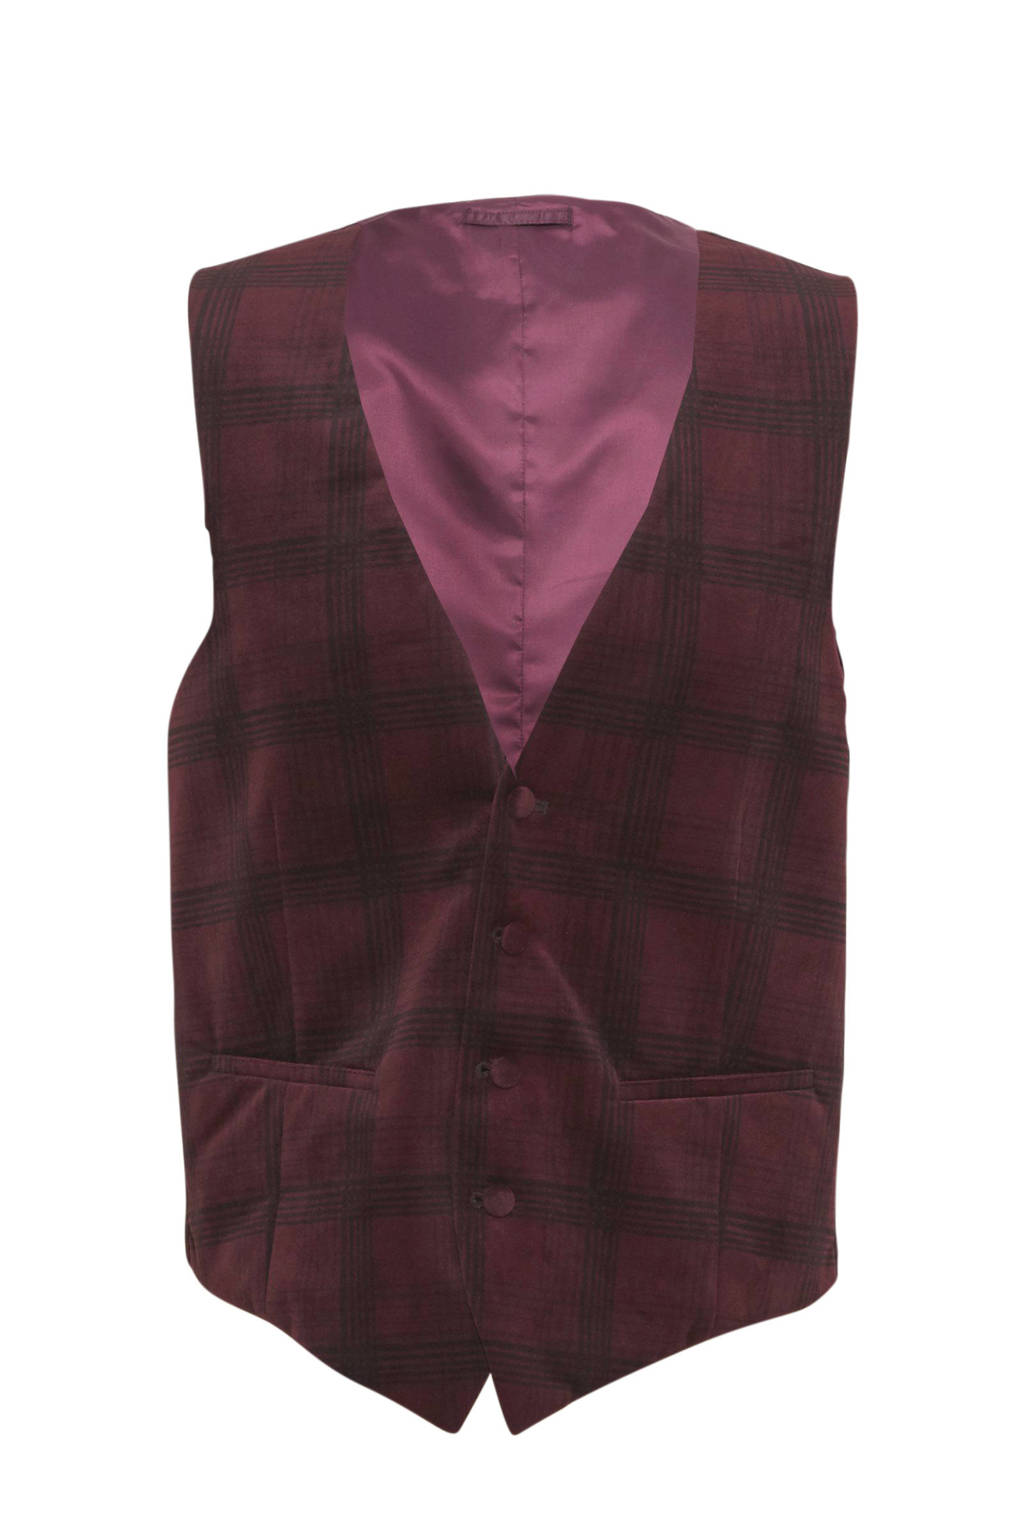 C&A Angelo Litrico geruit gilet donkerrood, Donkerrood